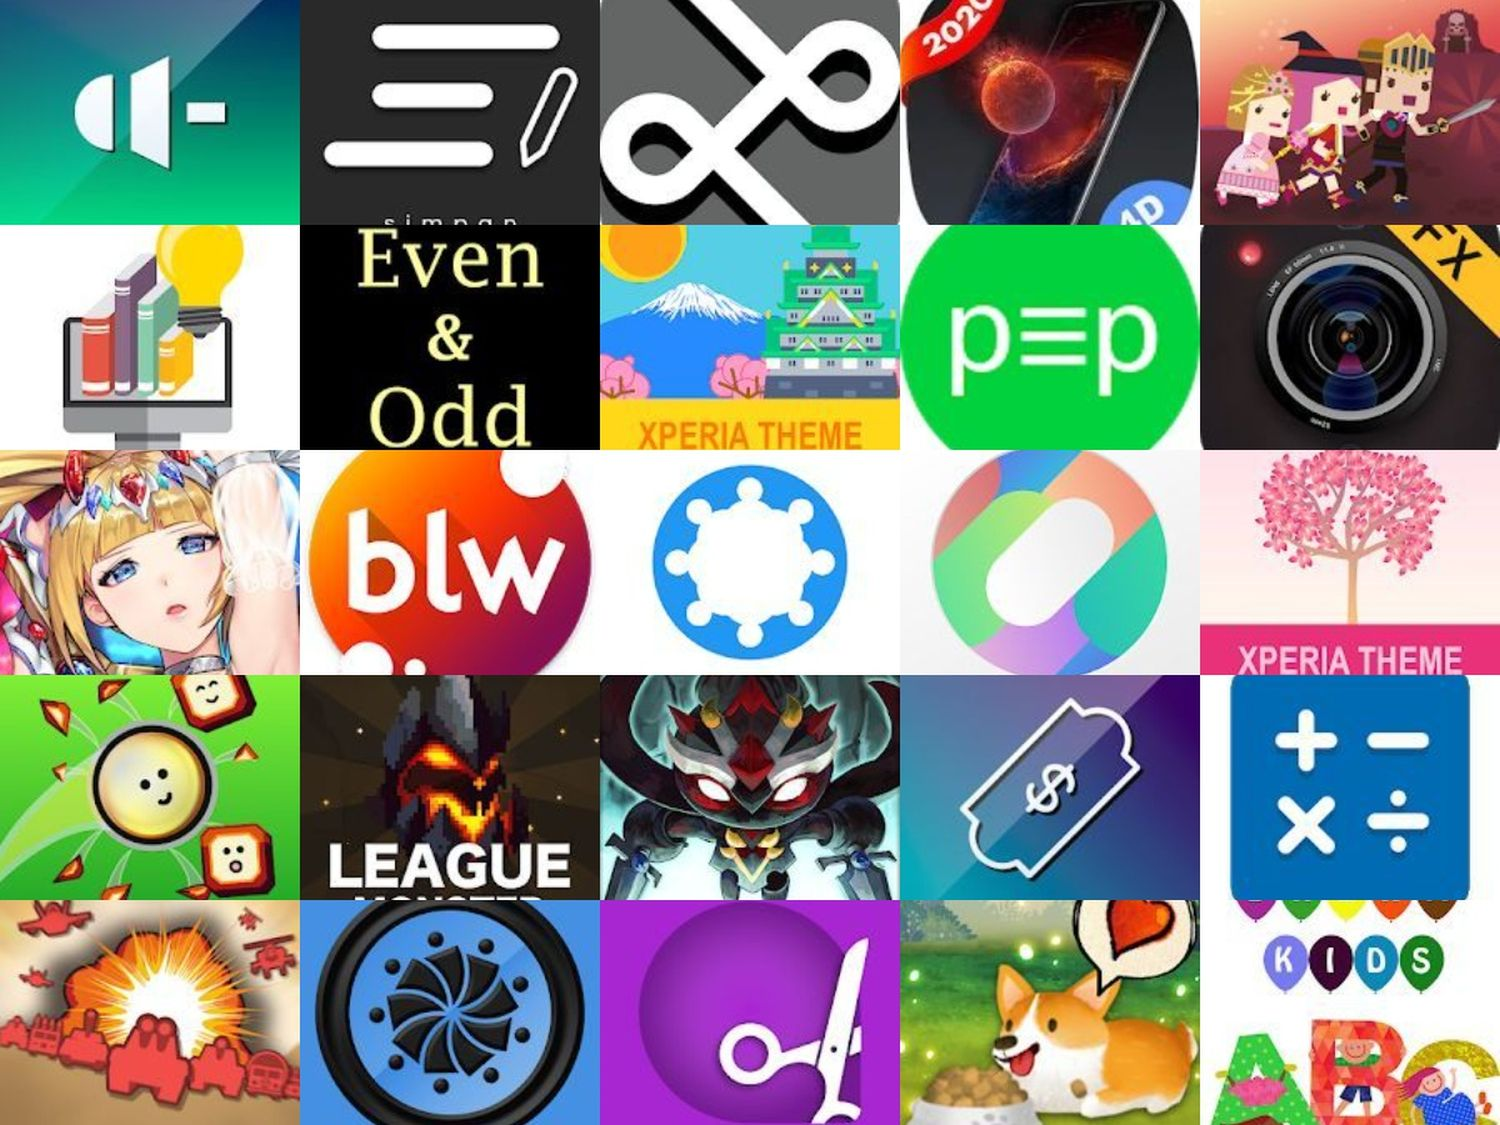 apps 15.11.2020